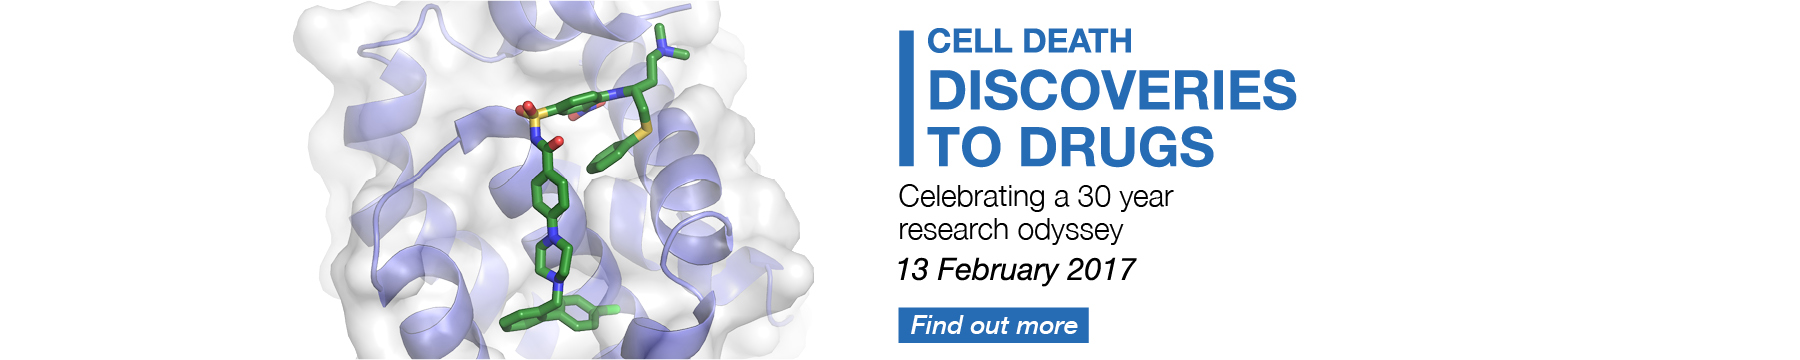 Cell Death symposium event promotion